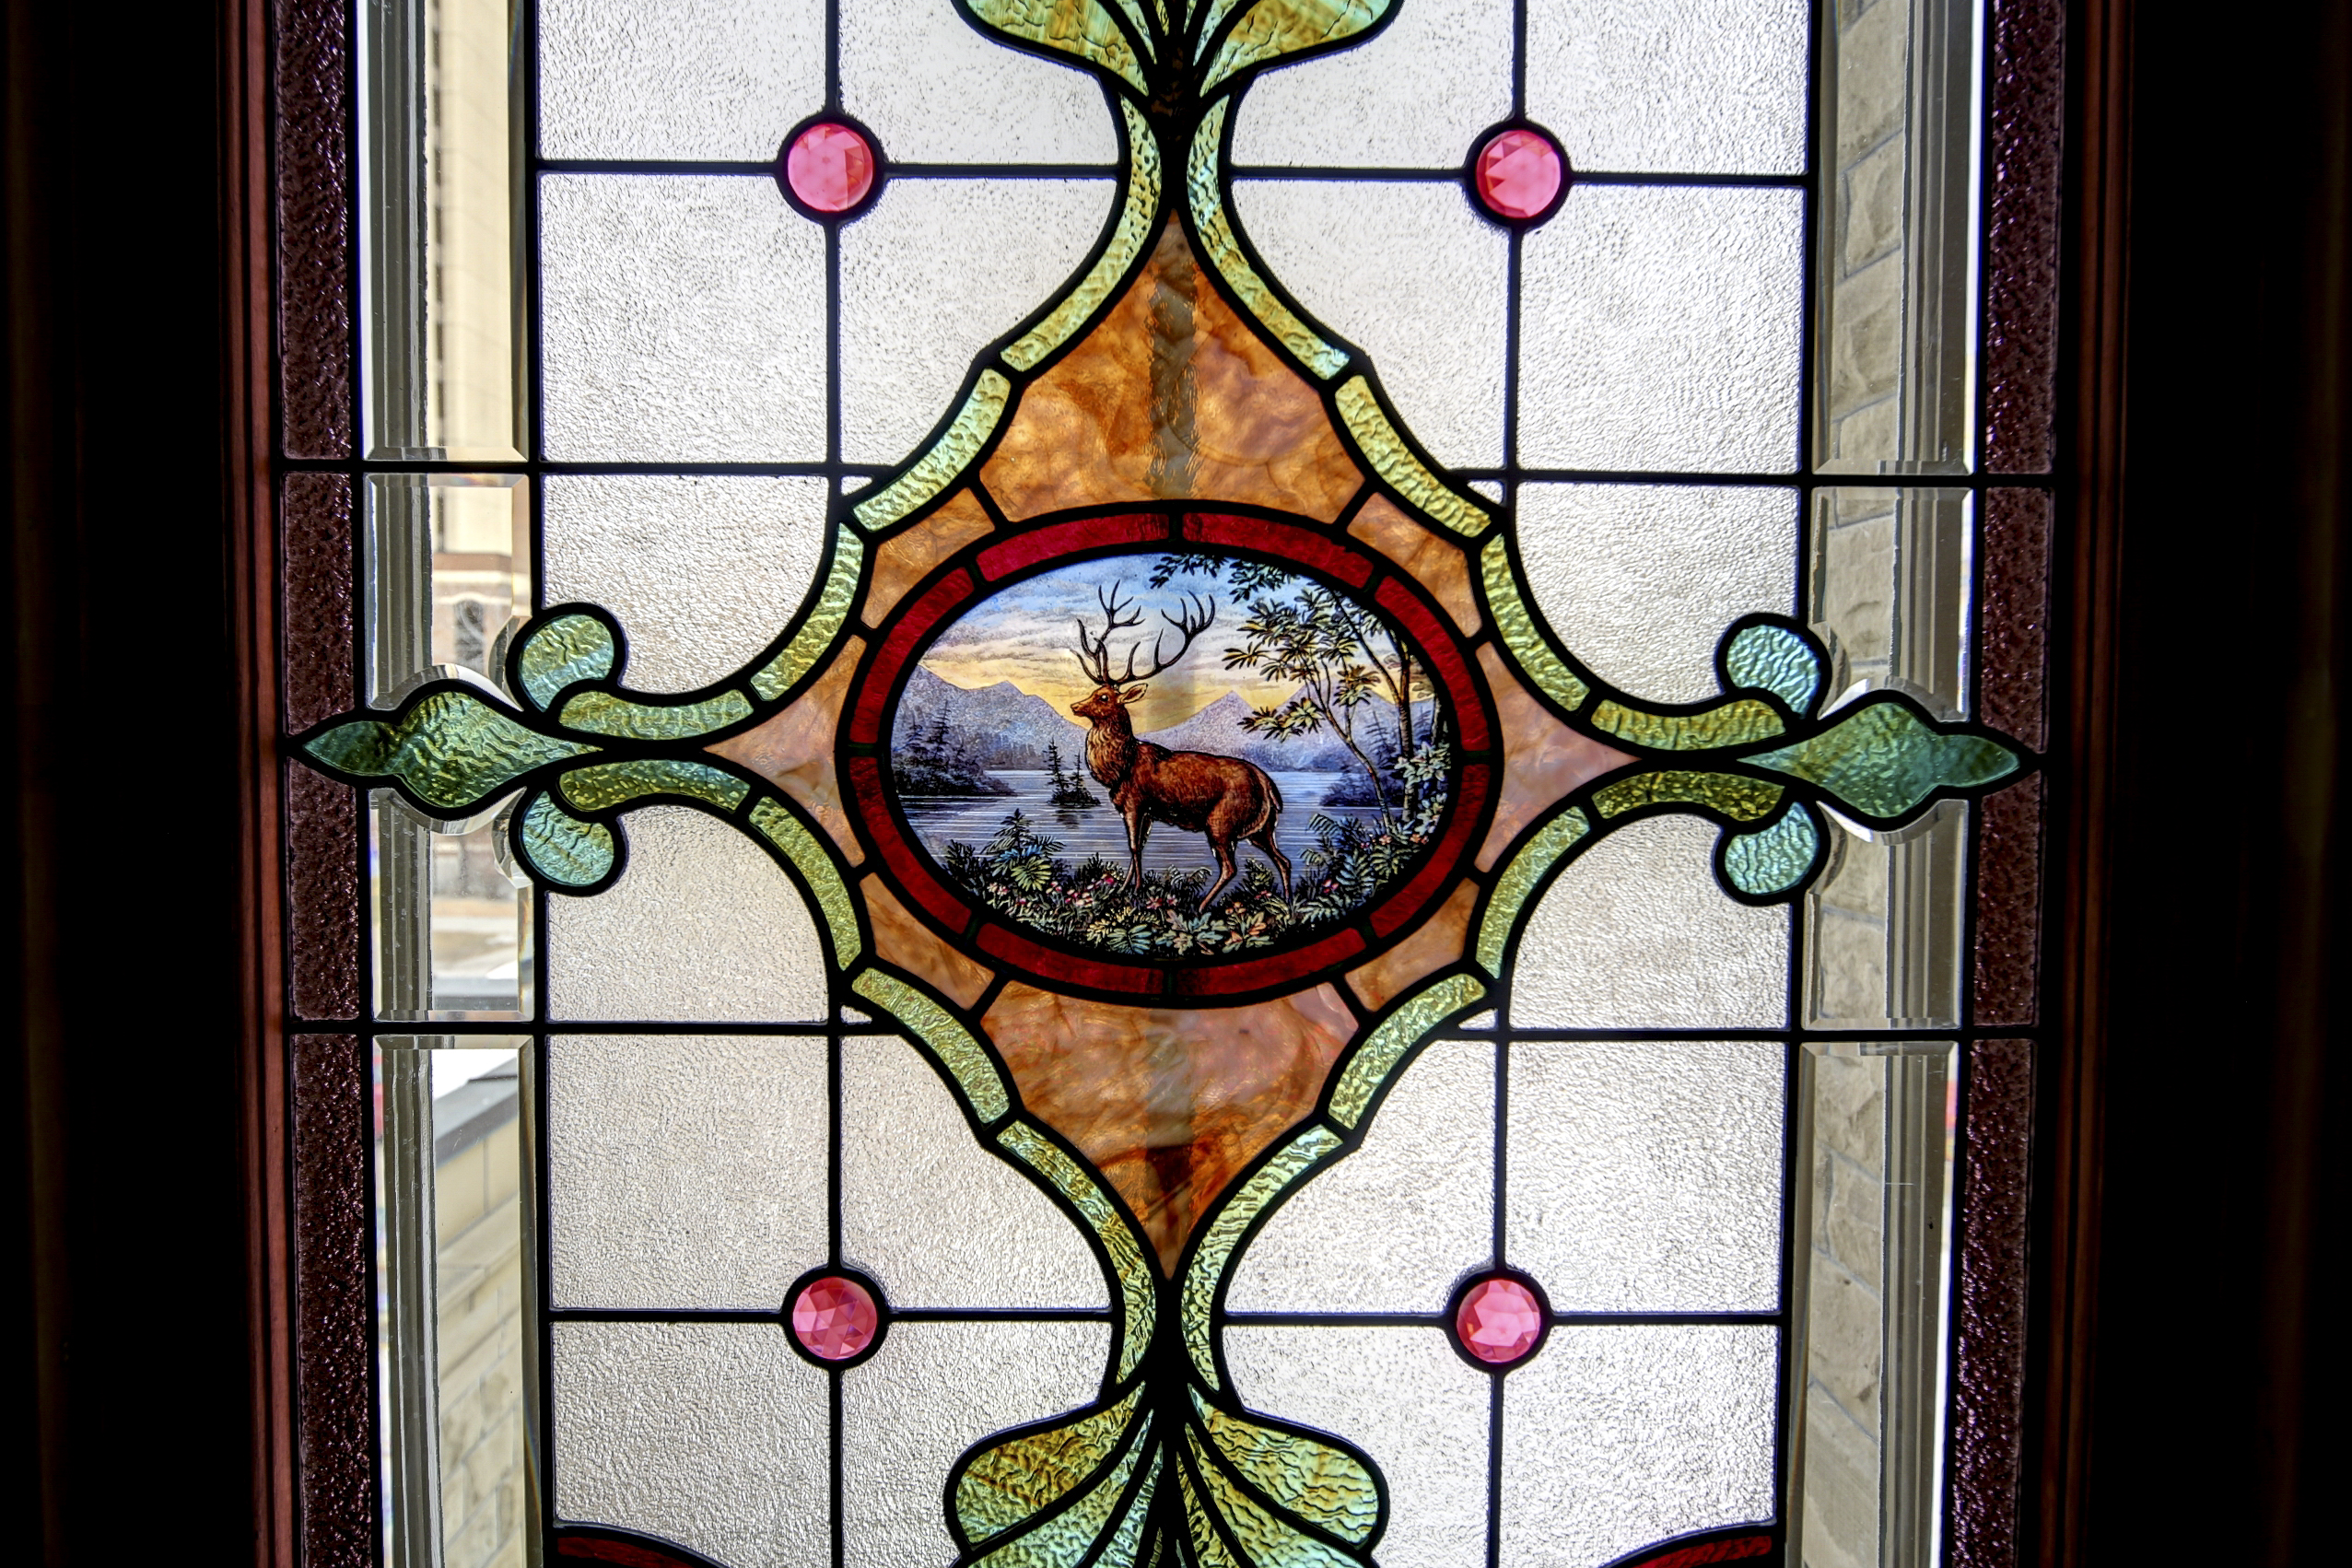 Stained Glass at Lougheed House